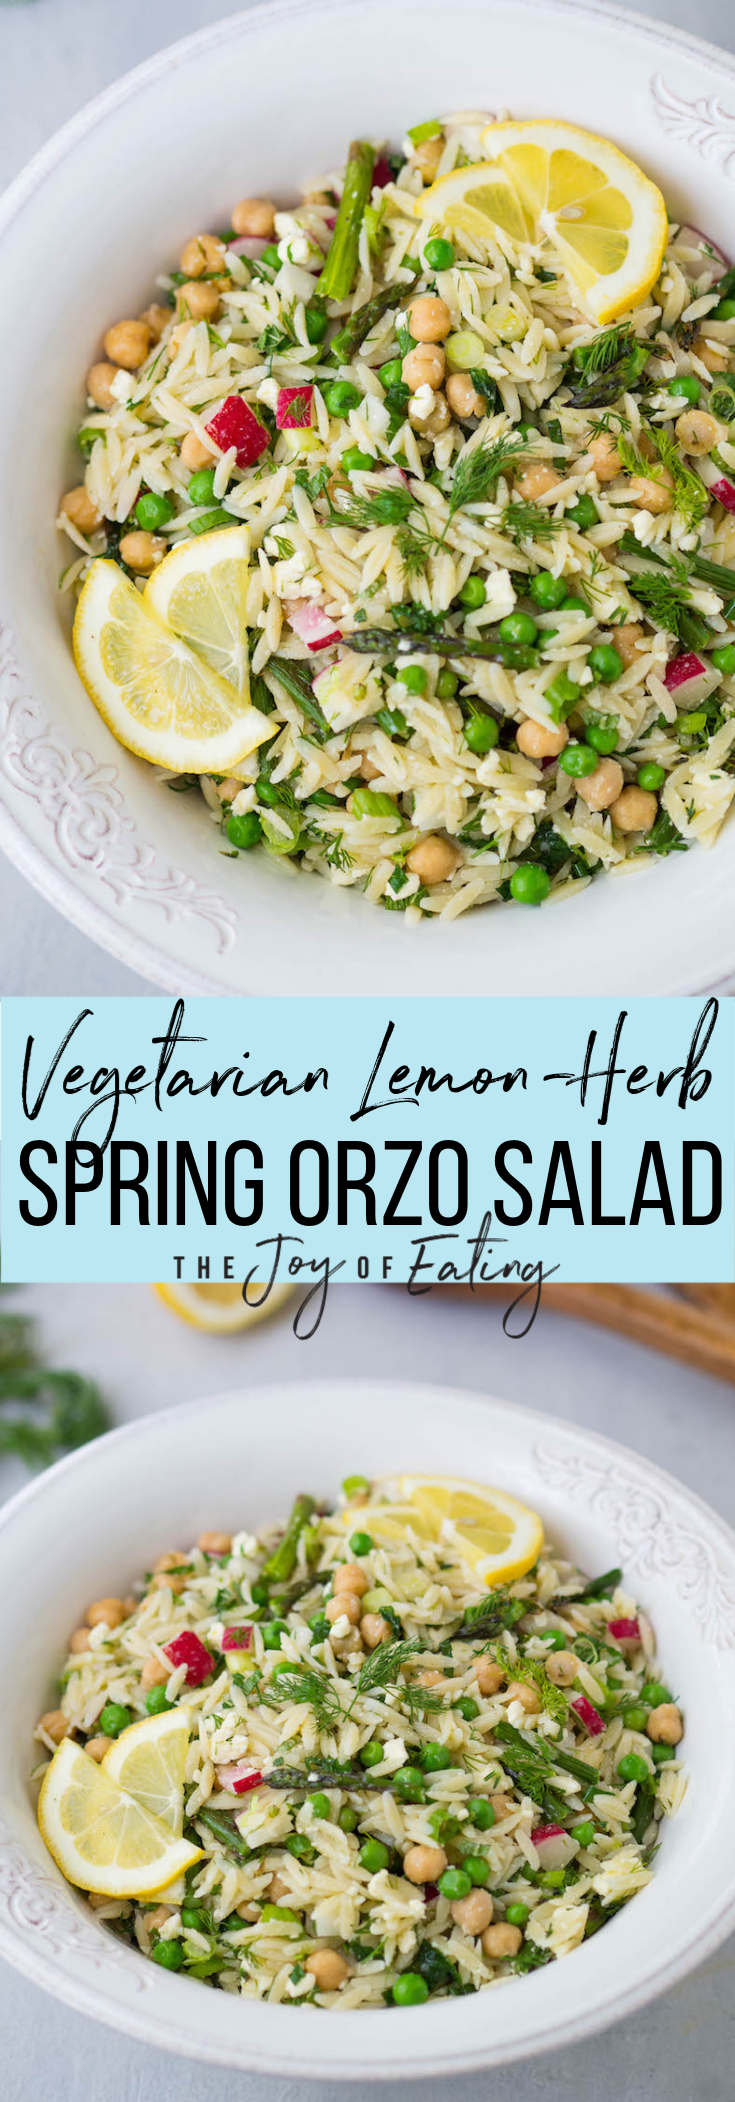 The BEST Spring Lemon-Herb Orzo Salad! It's so easy to make and packed with fresh flavors from tons of herbs, lemon juice, feta cheese and crunchy peppery radish!